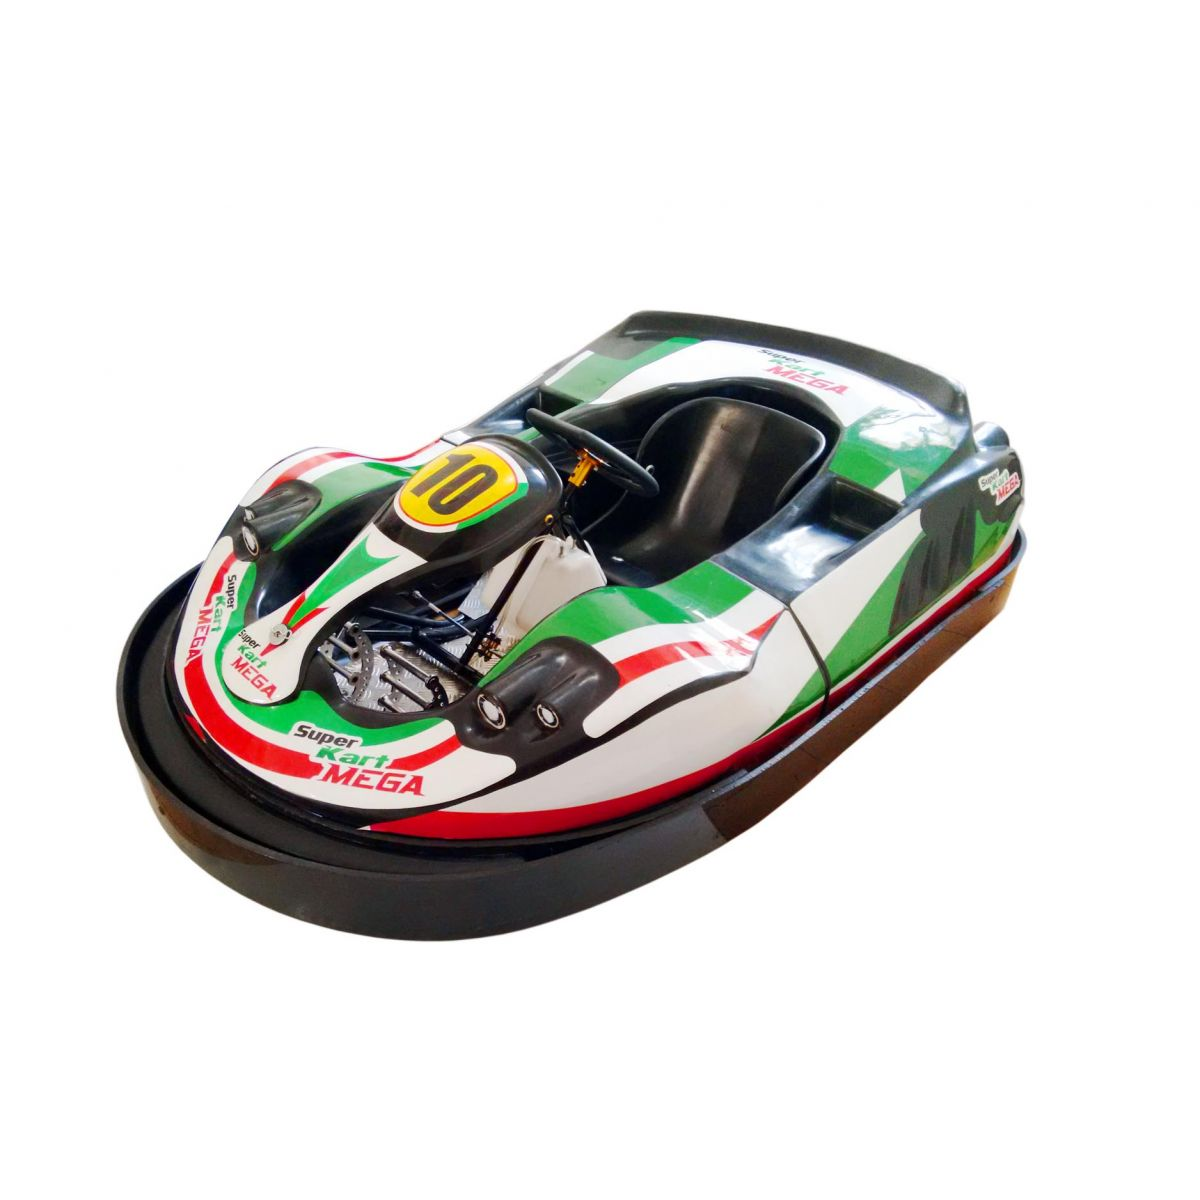 Kart Indoor Carenado com Amortecedor de Choque - 836